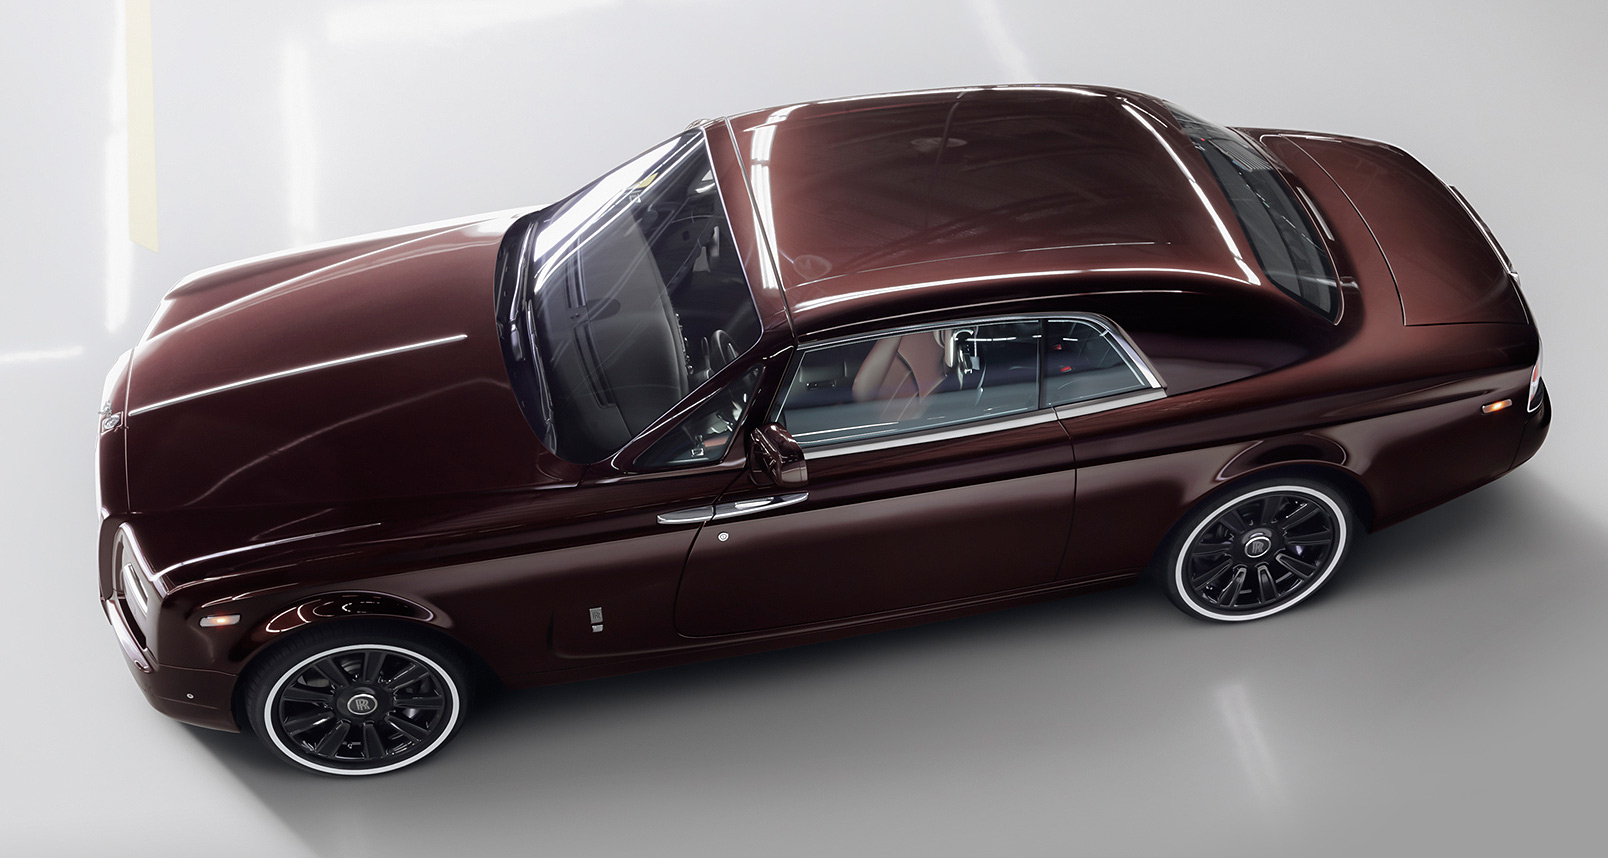 Rolls-Royce Motor Cars Reaches The Pinnacle With The Phantom Zenith Collection 14